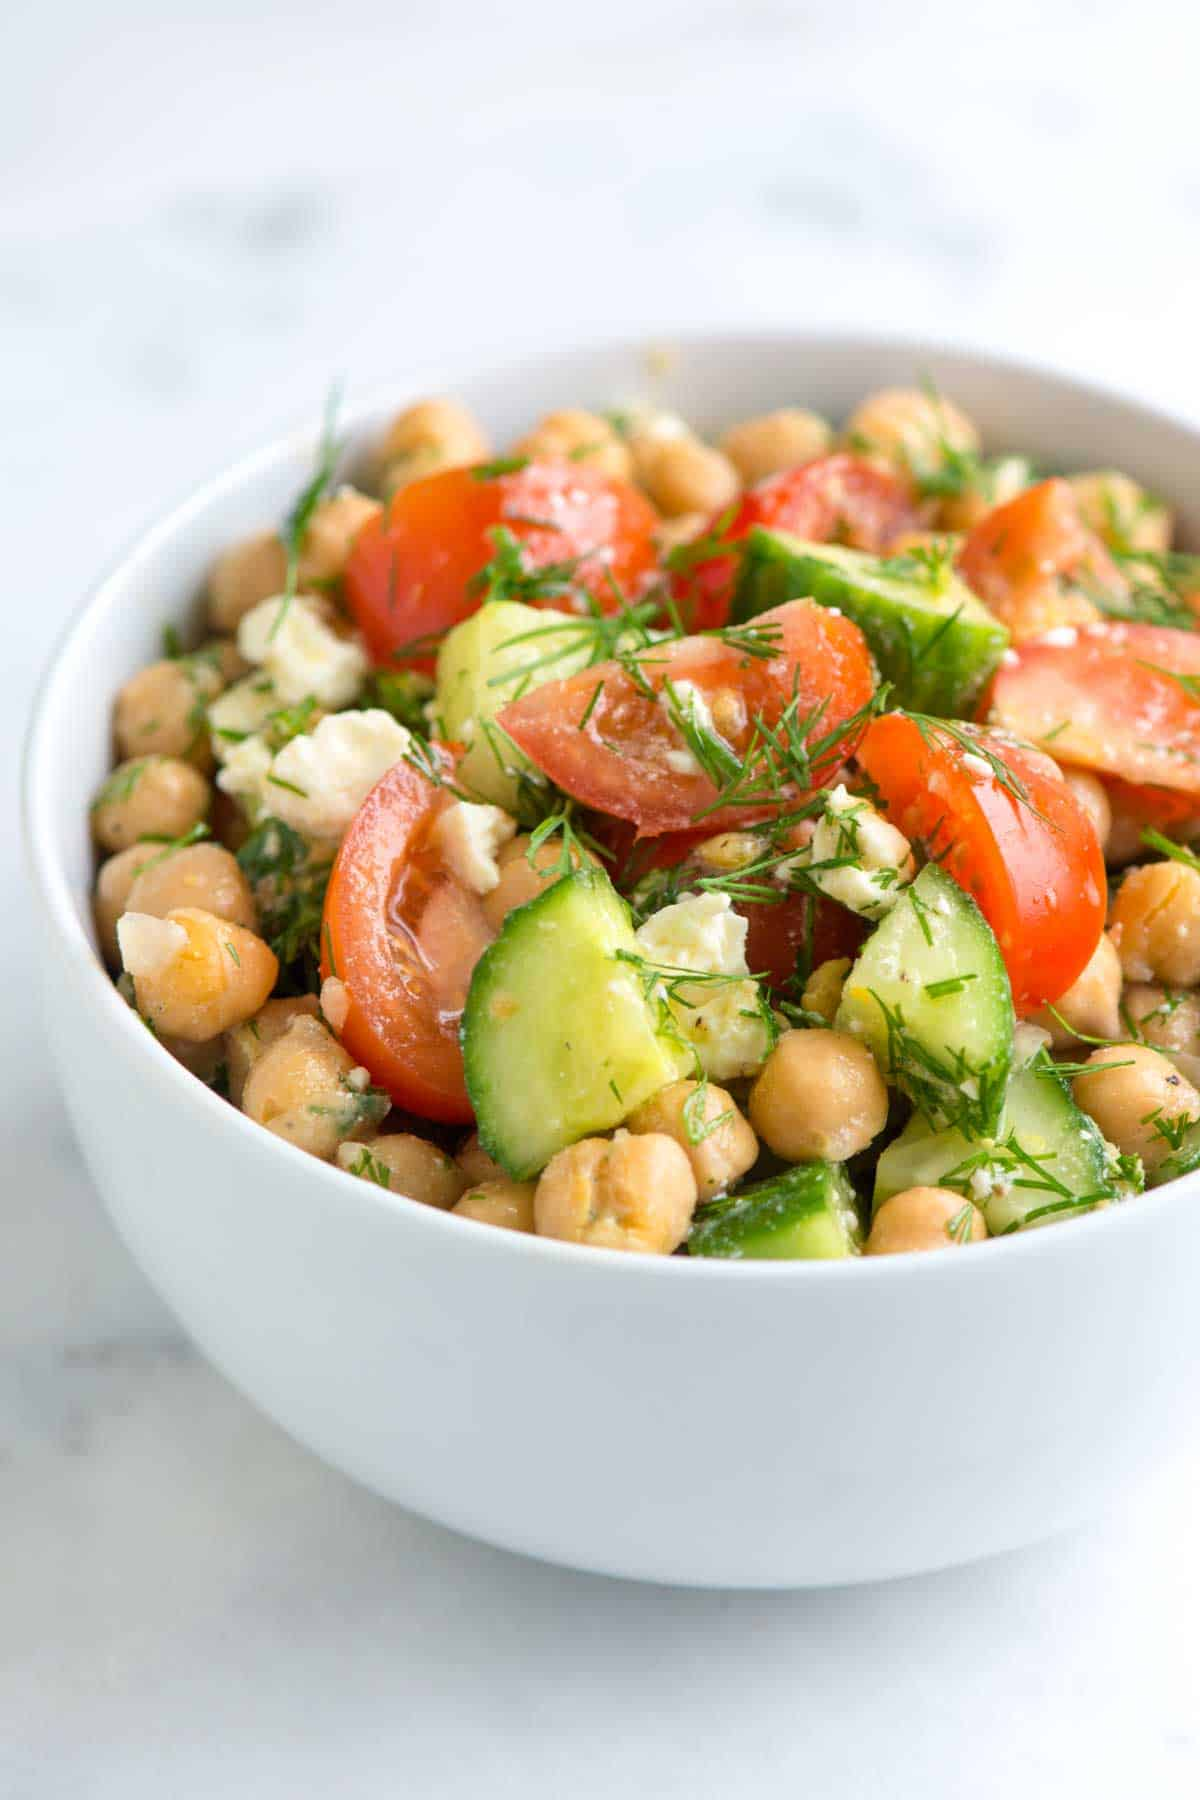 How to Make the Best Chickpea Salad